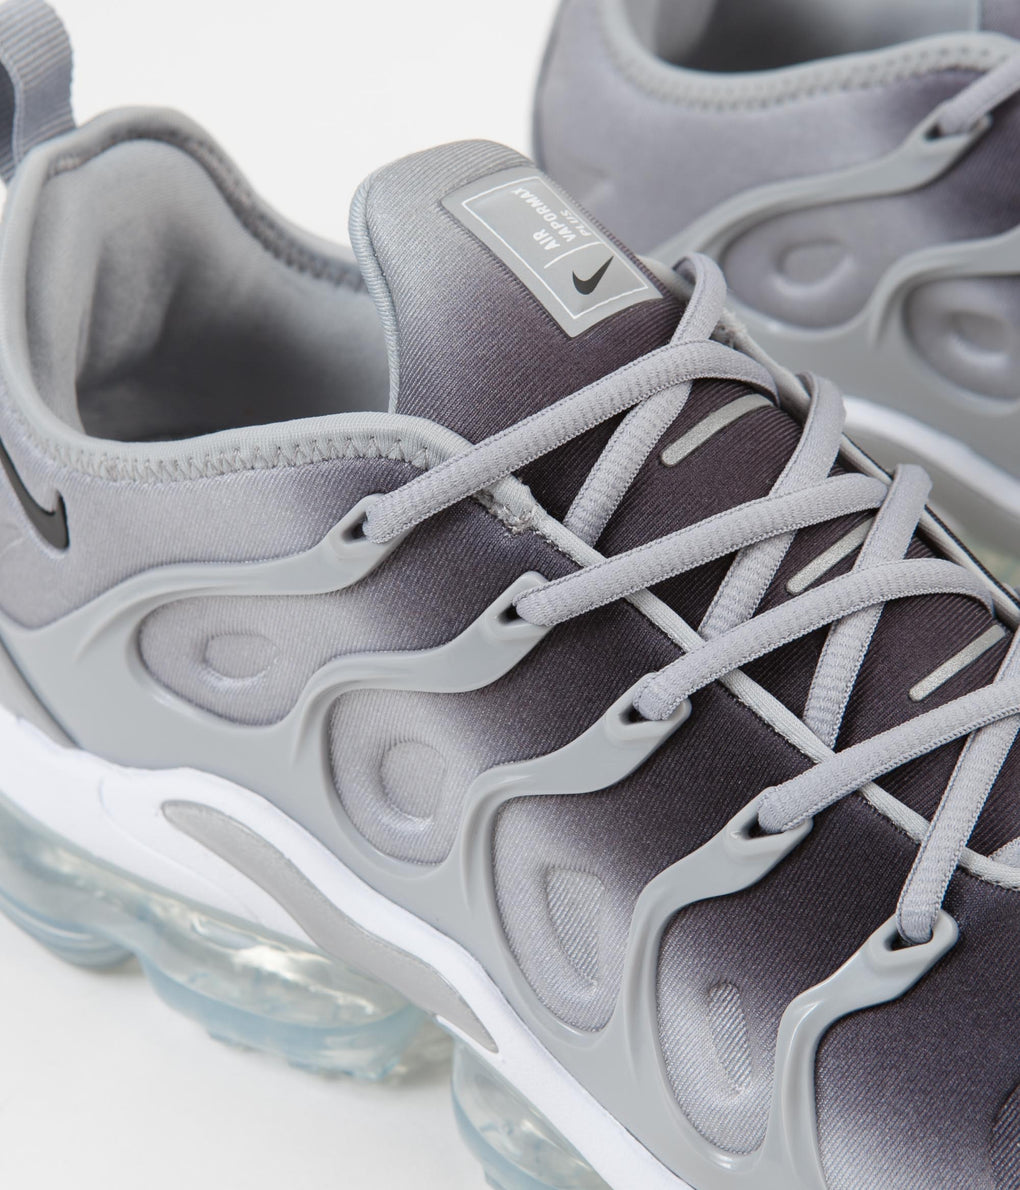 Nike Air VaporMax Plus Shoes - Wolf Grey / Black - White